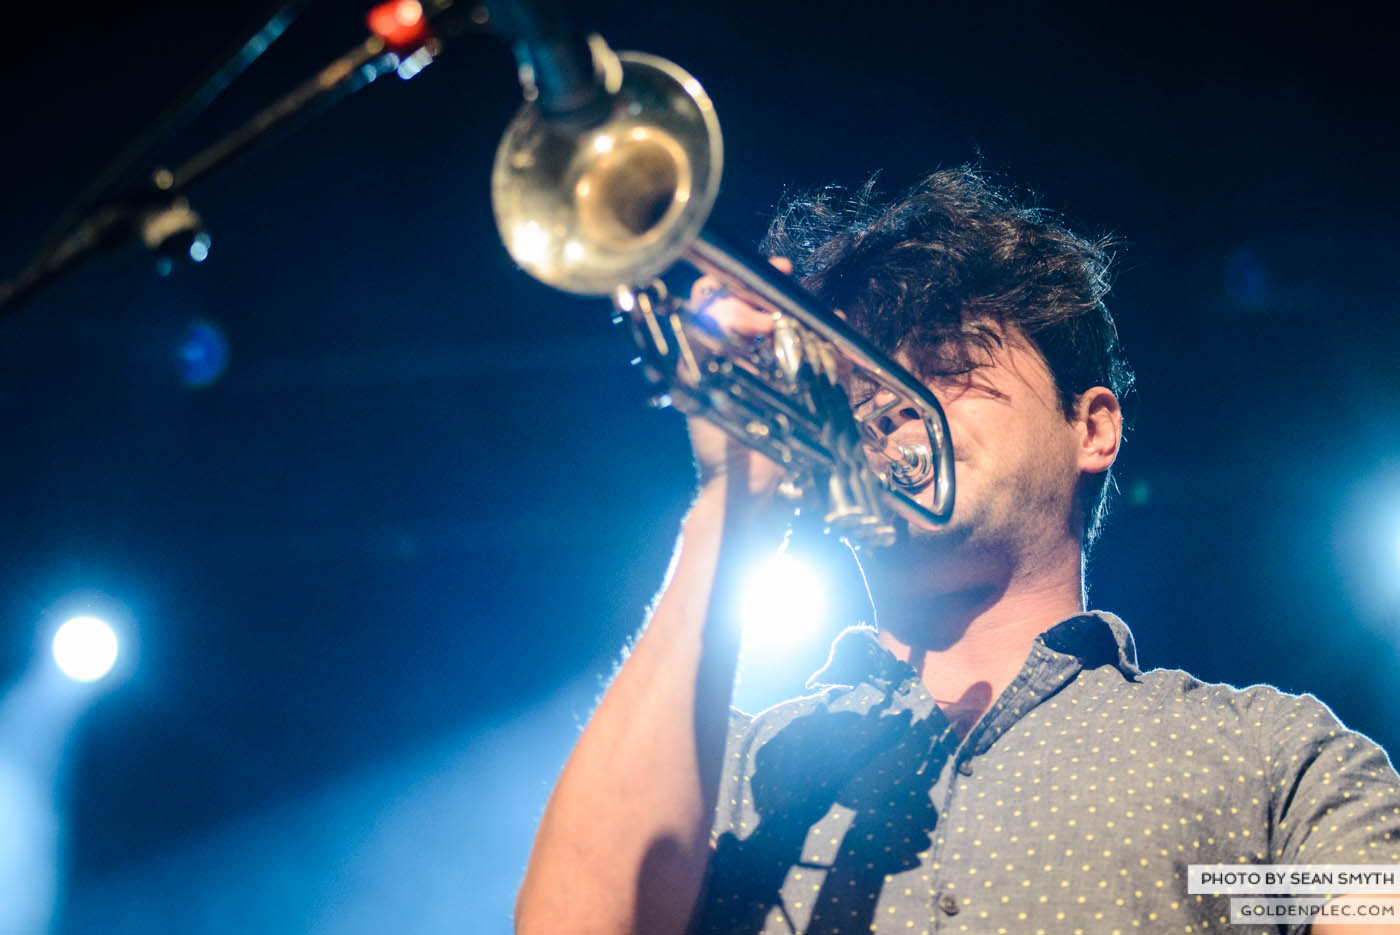 the-antlers-at-the-olympia-theatre-by-sean-smyth-30-10-14-10-of-22